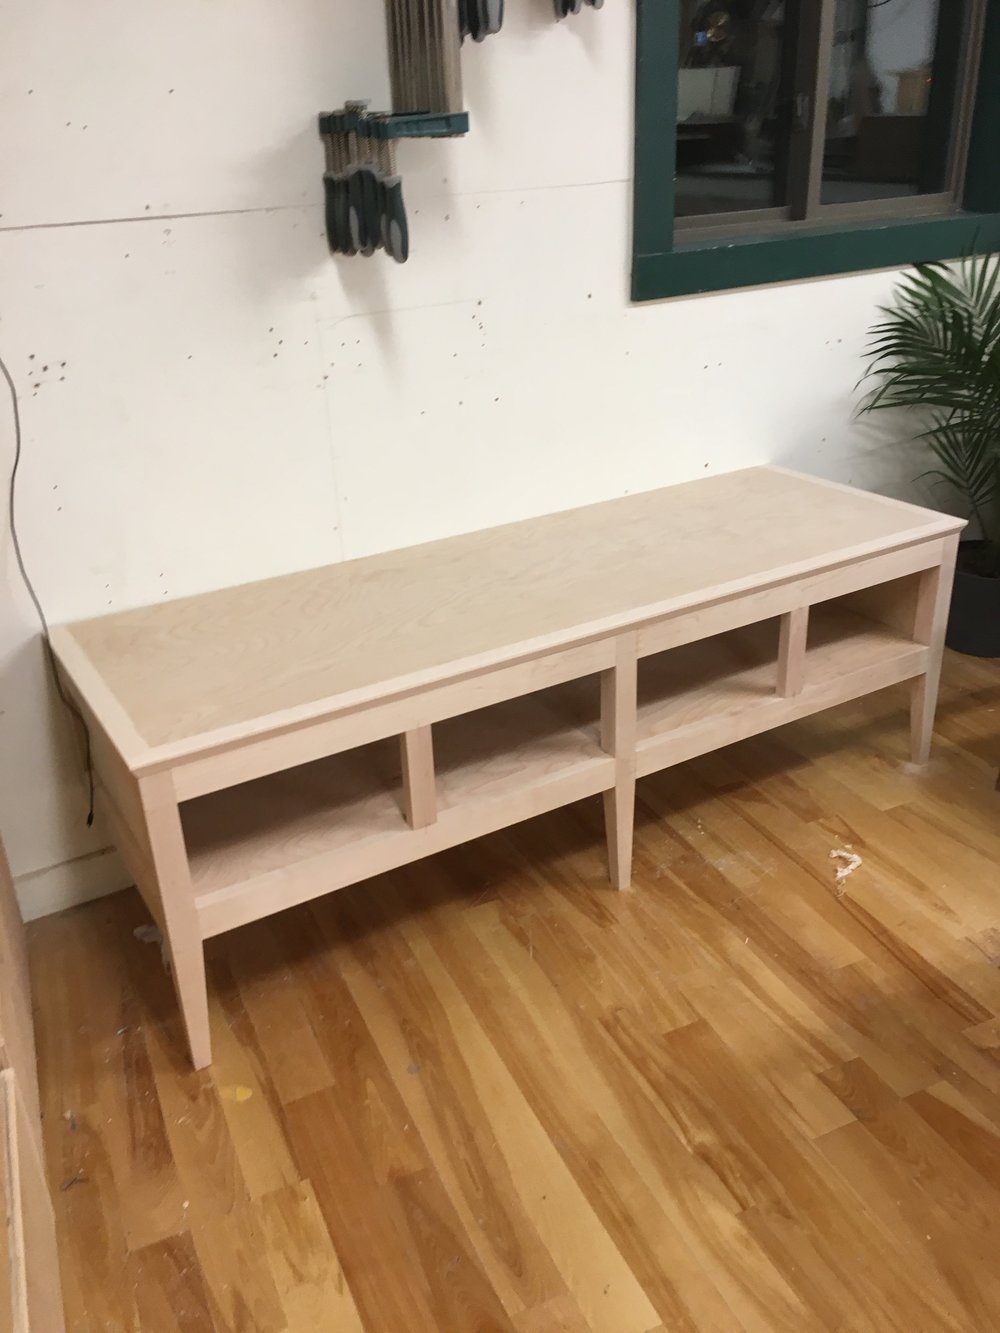 Hone Design Co._Dorchester Bench 5